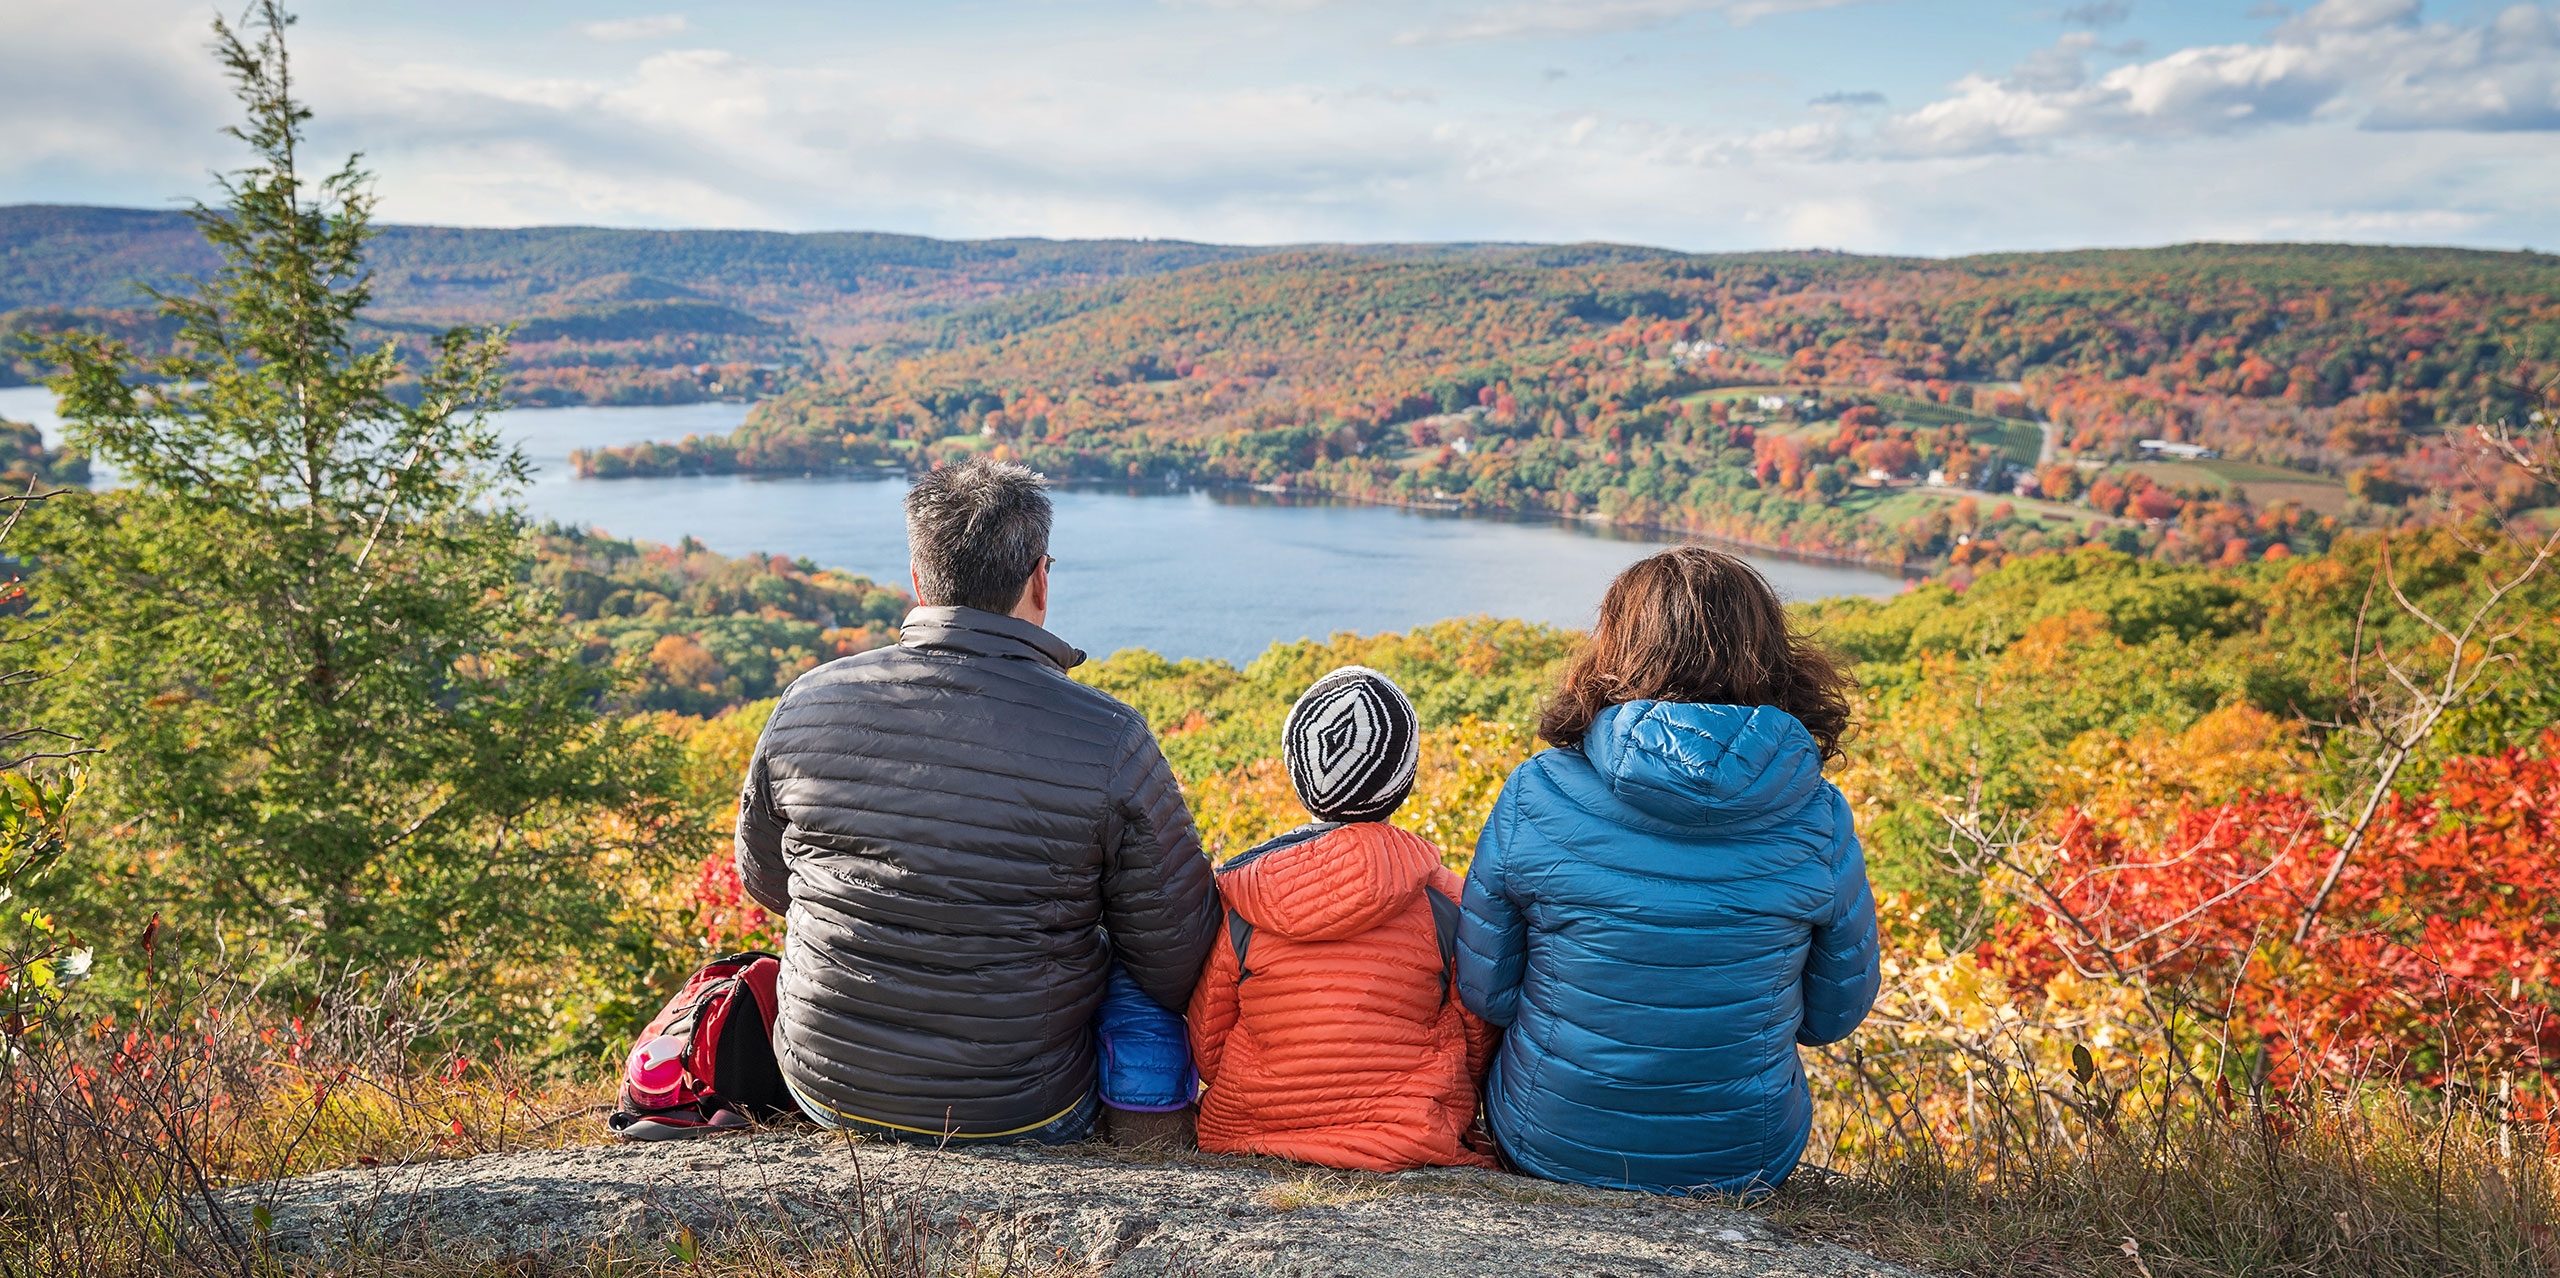 Family Overlooking a Lake in the Fall; Courtesy of Romiana Lee/Shutterstock.com